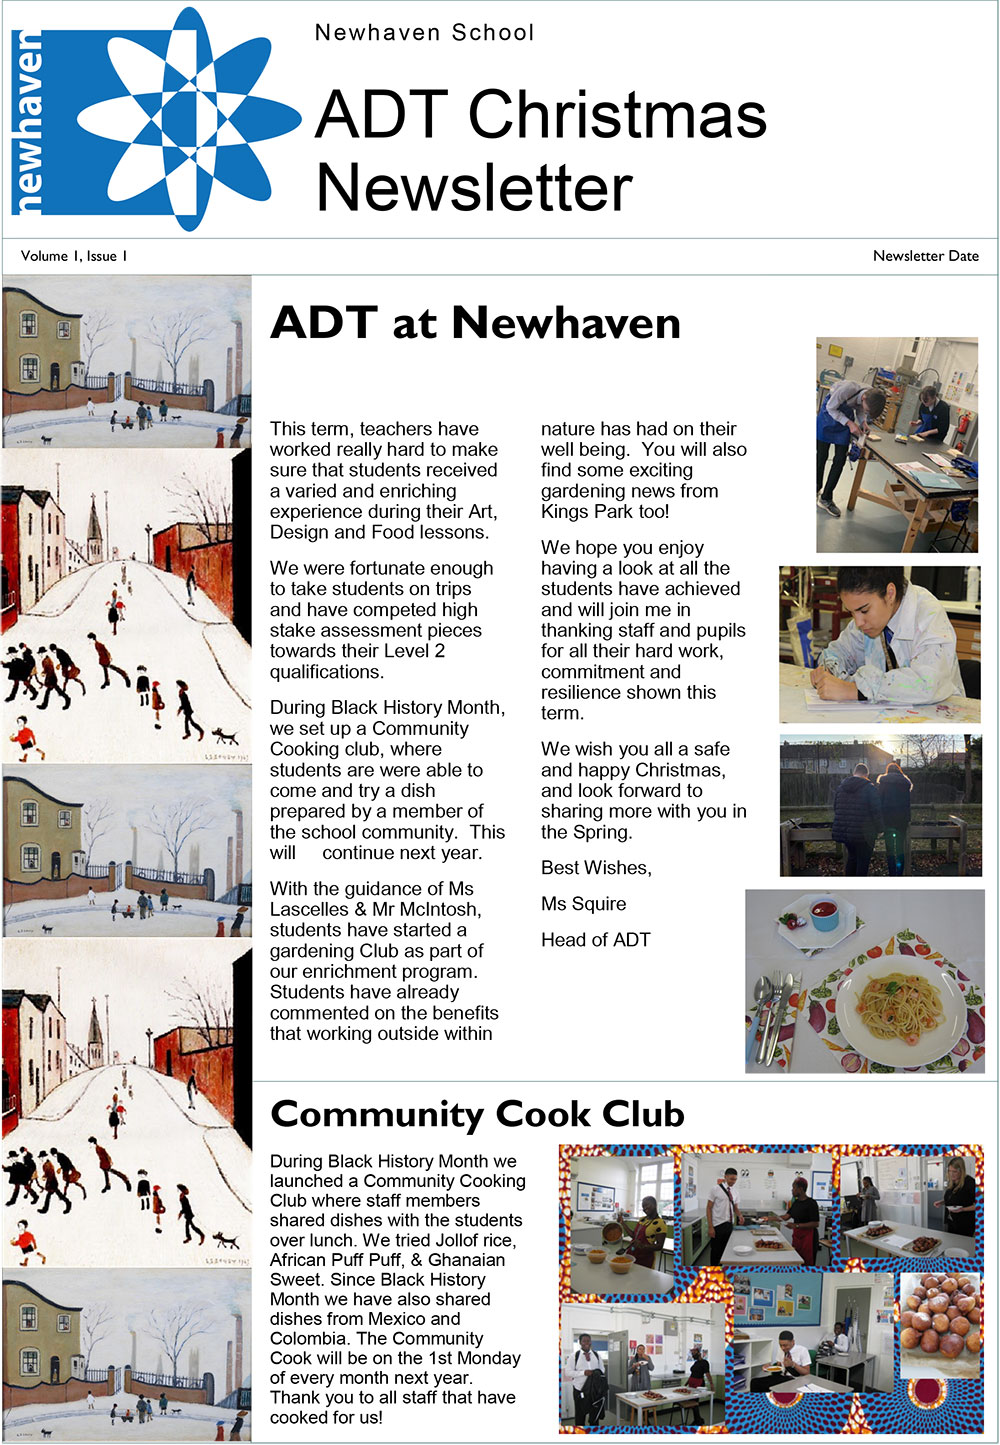 adt christmas newsletter preview